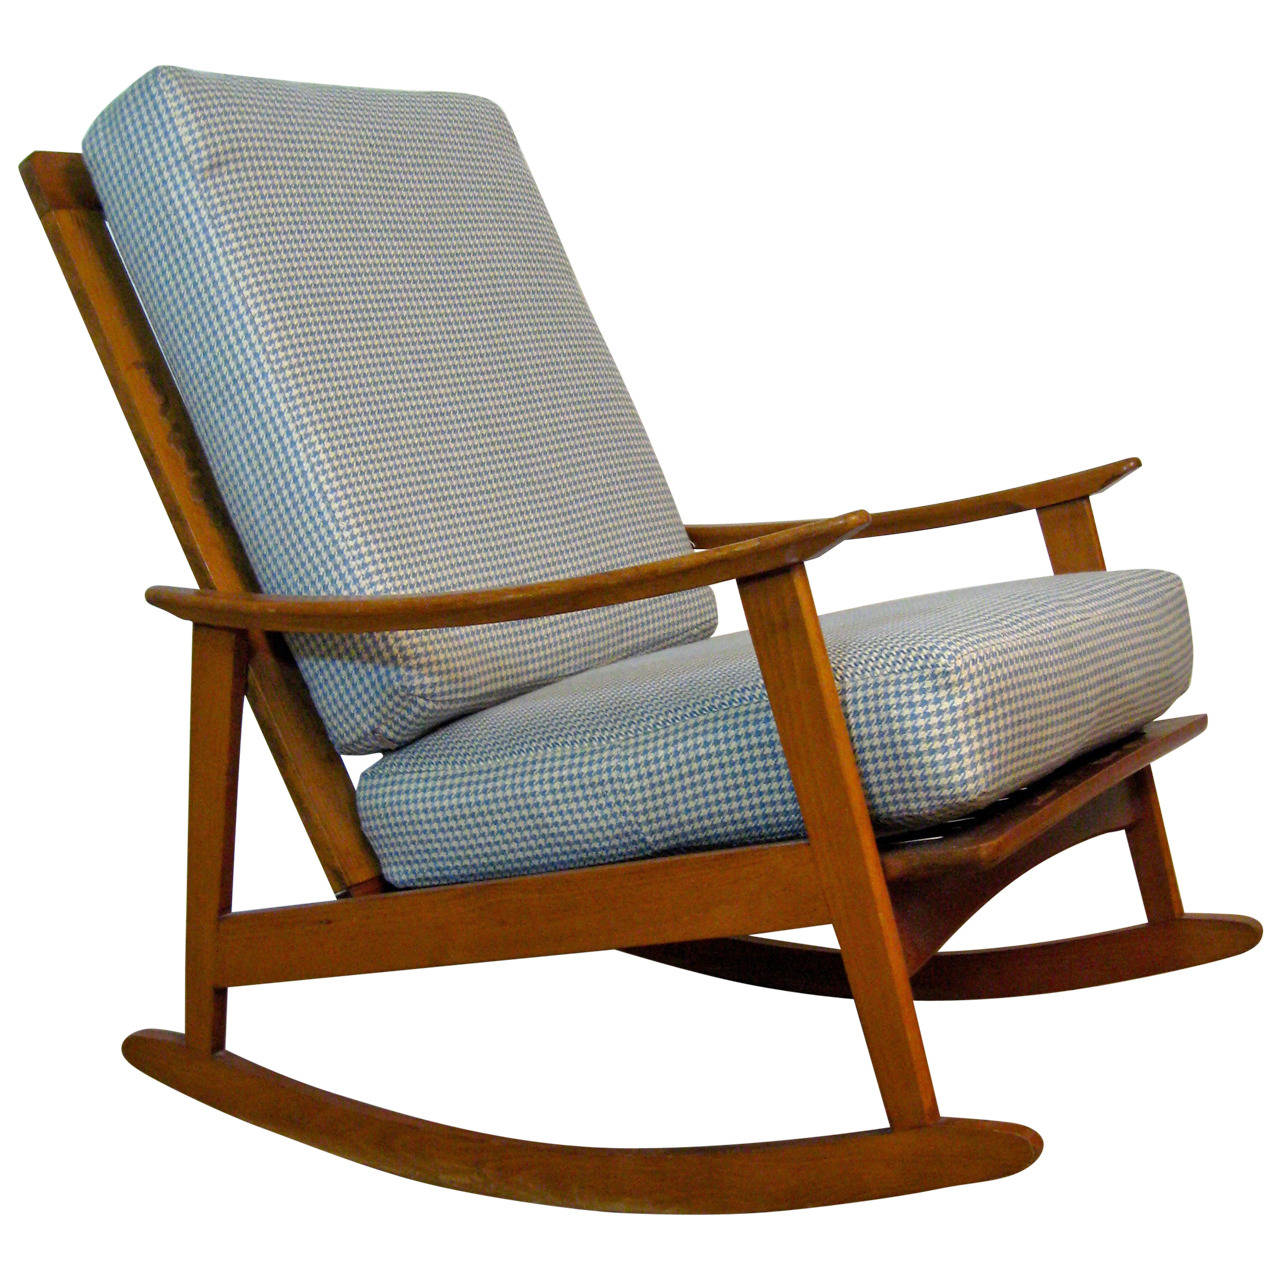 Image of: Simple Mid Century Modern Rocking Chair